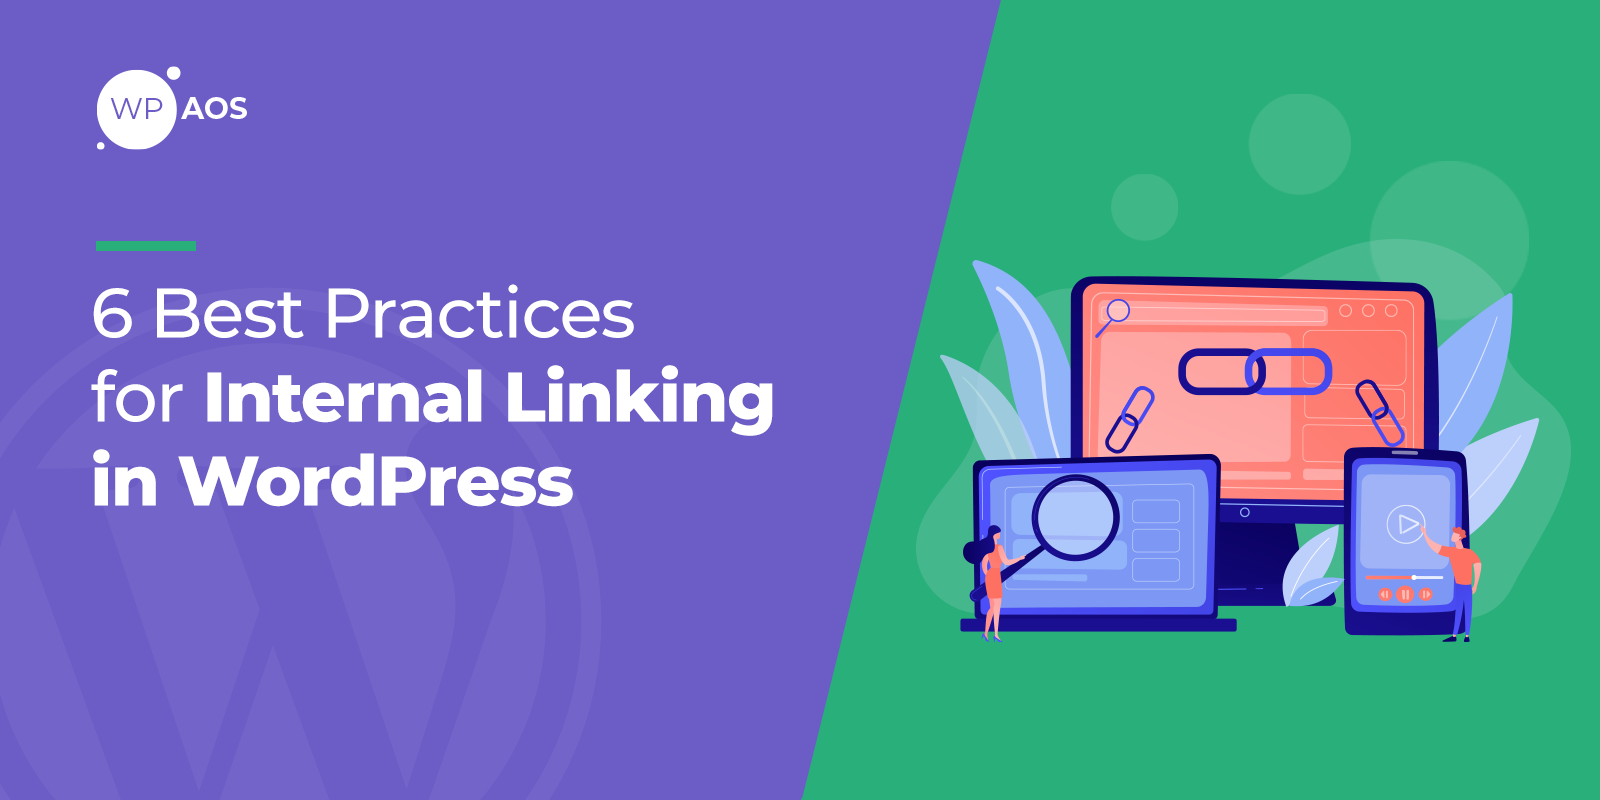 6-best-practices-for-internal-linking-in-wordpress